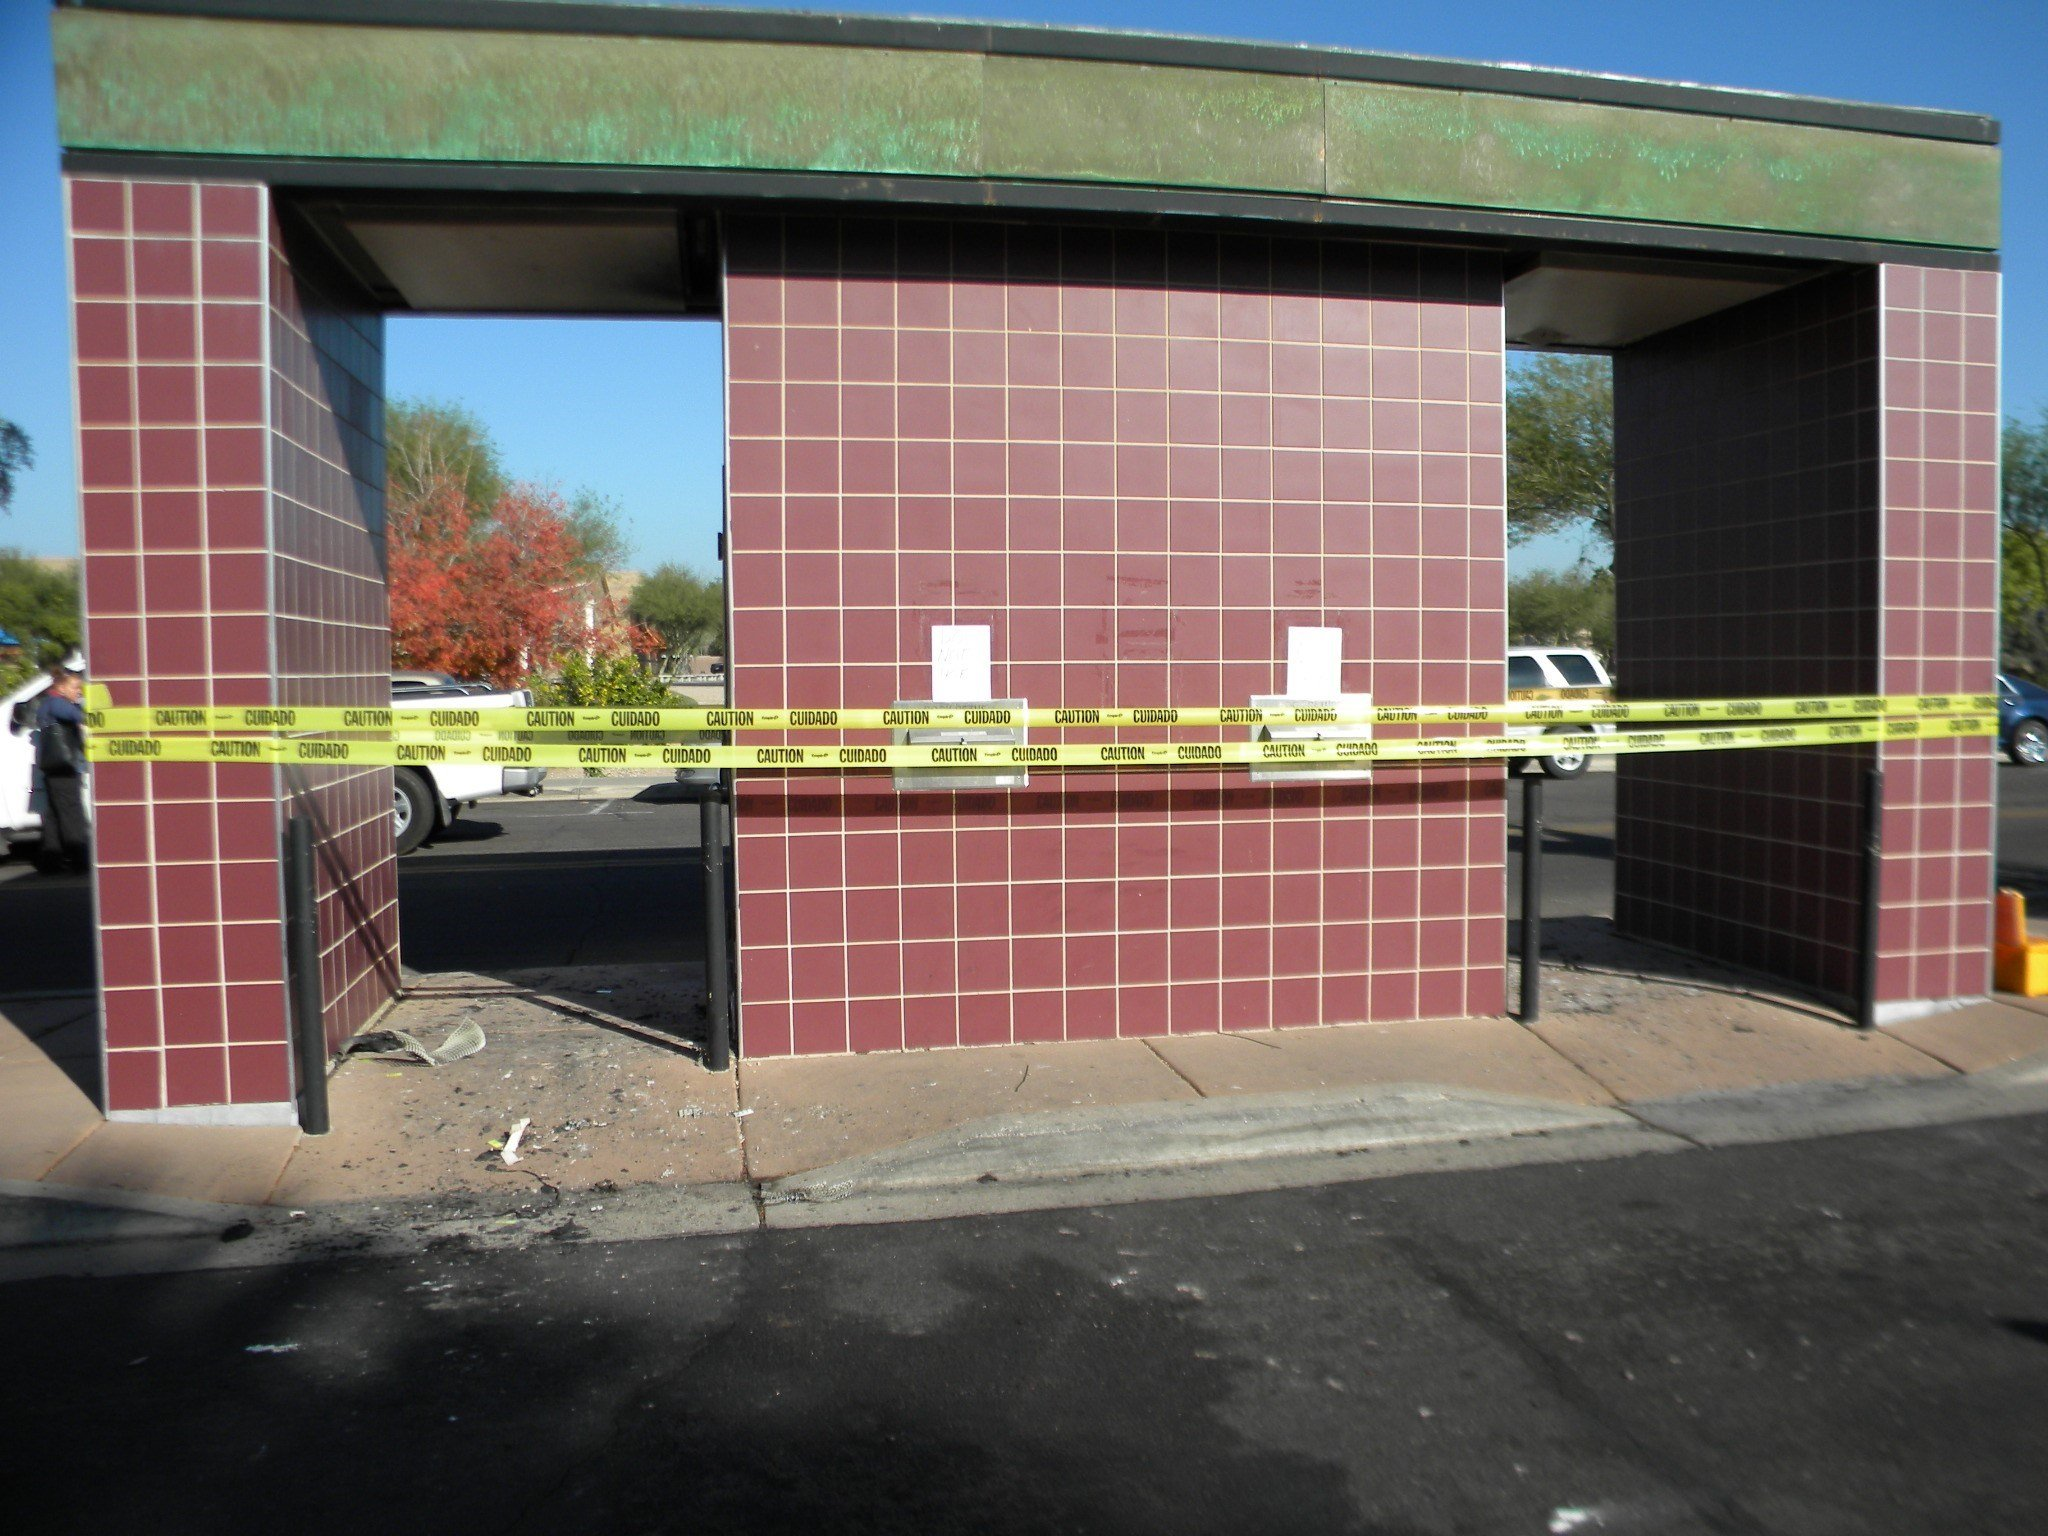 The book drop-off in front of the building was torched. at about 12:15 a.m. on Dec. 14 (Source: Glendale Police Dept.)